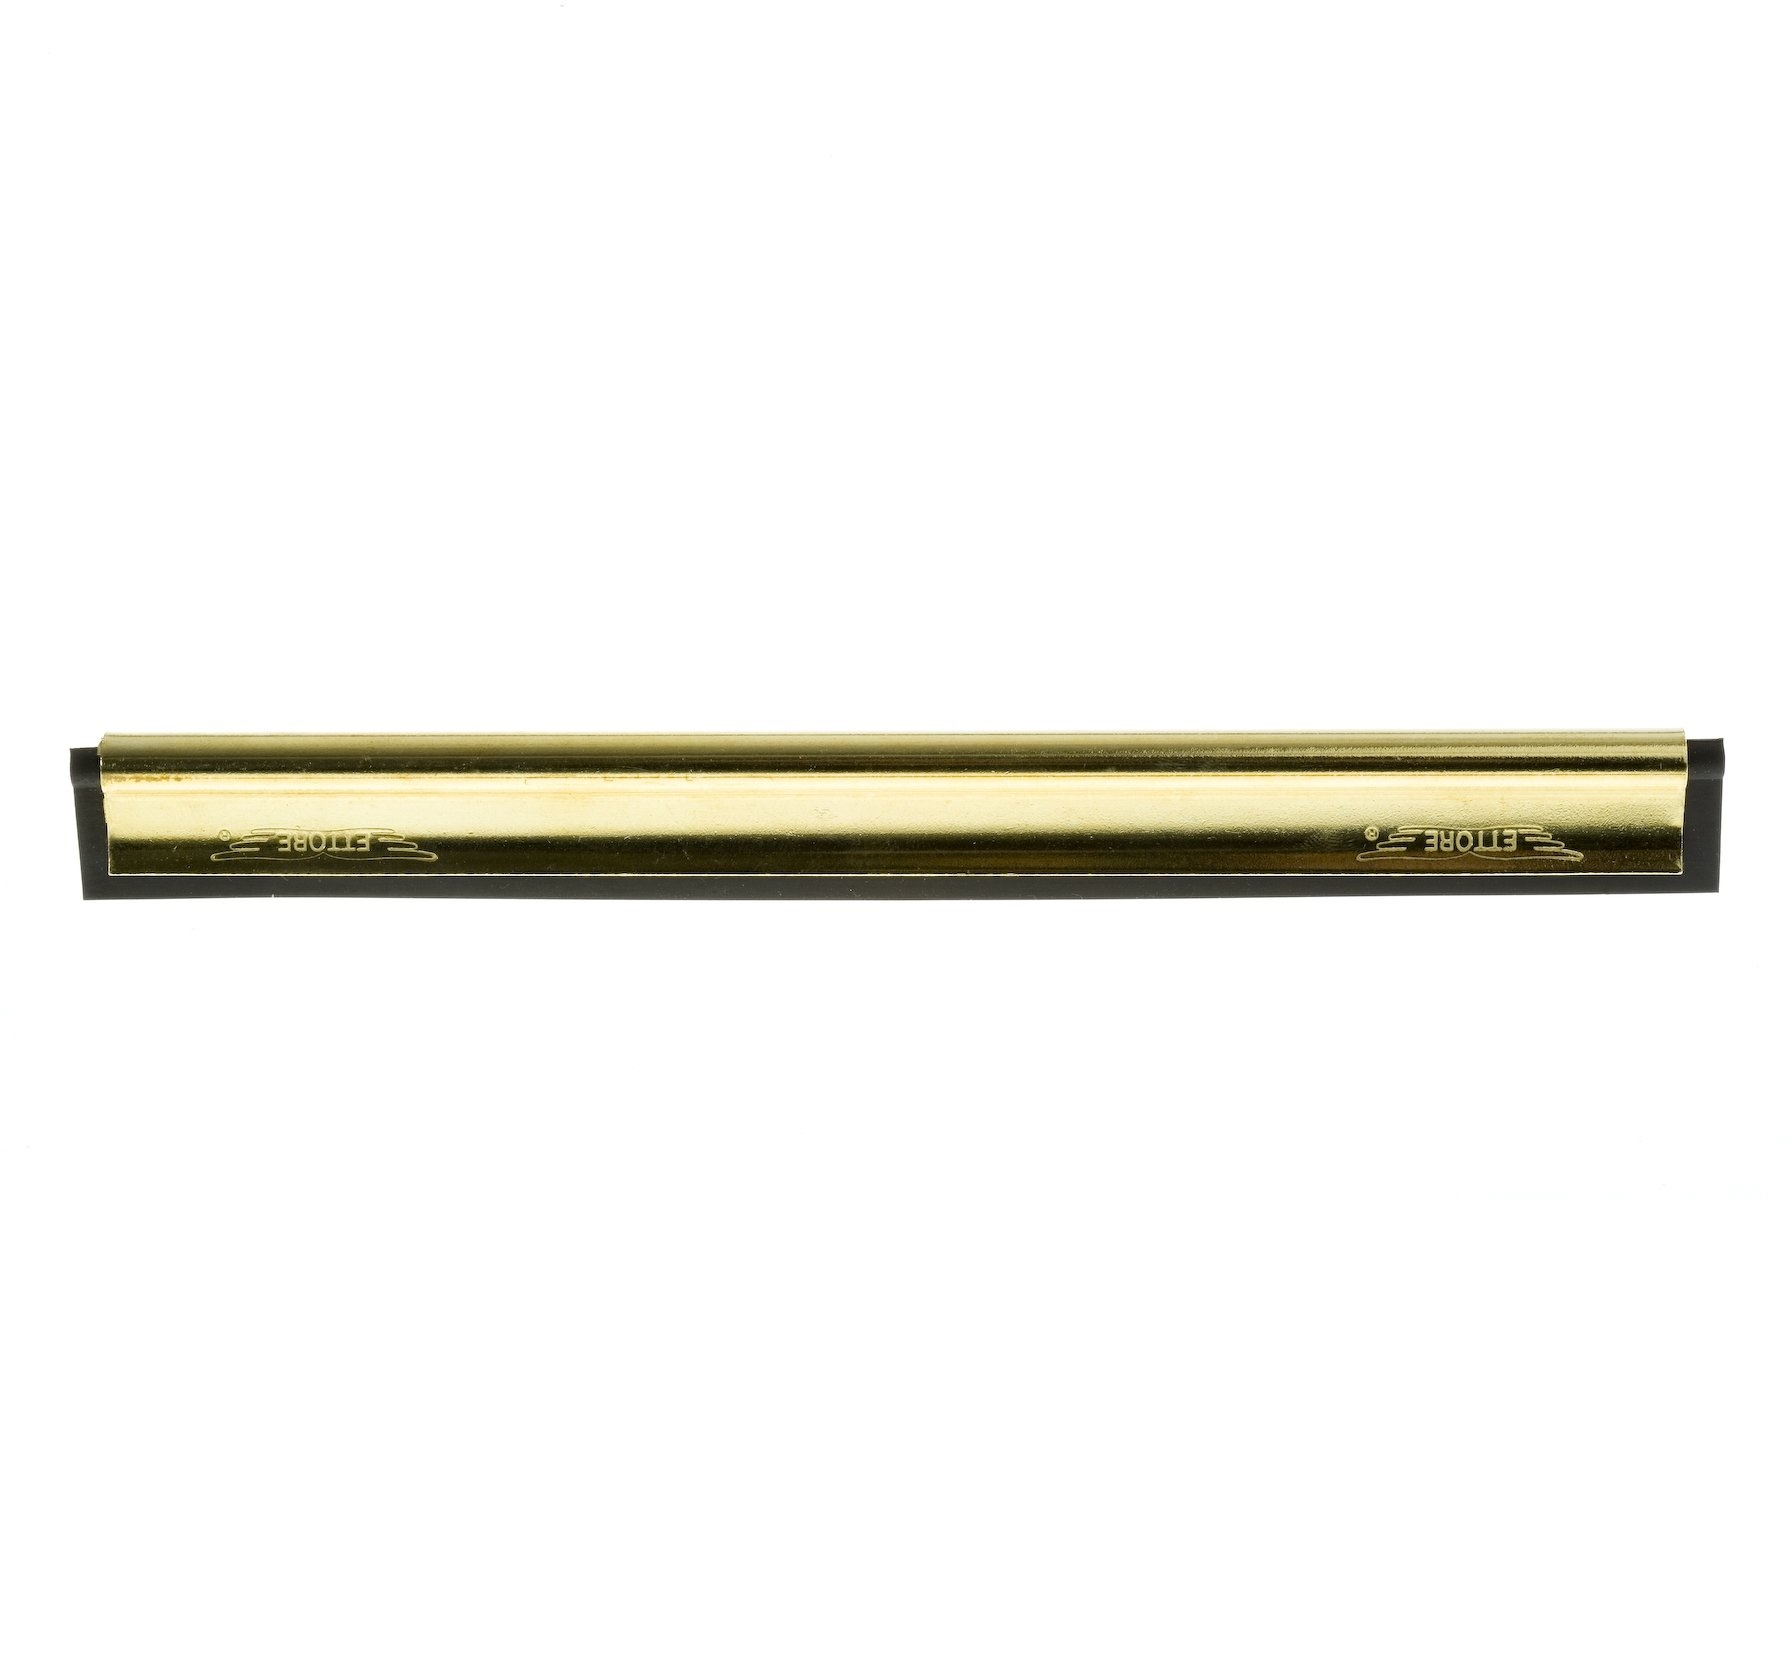 Ettore Master Brass Channel & Rubber 18-inch